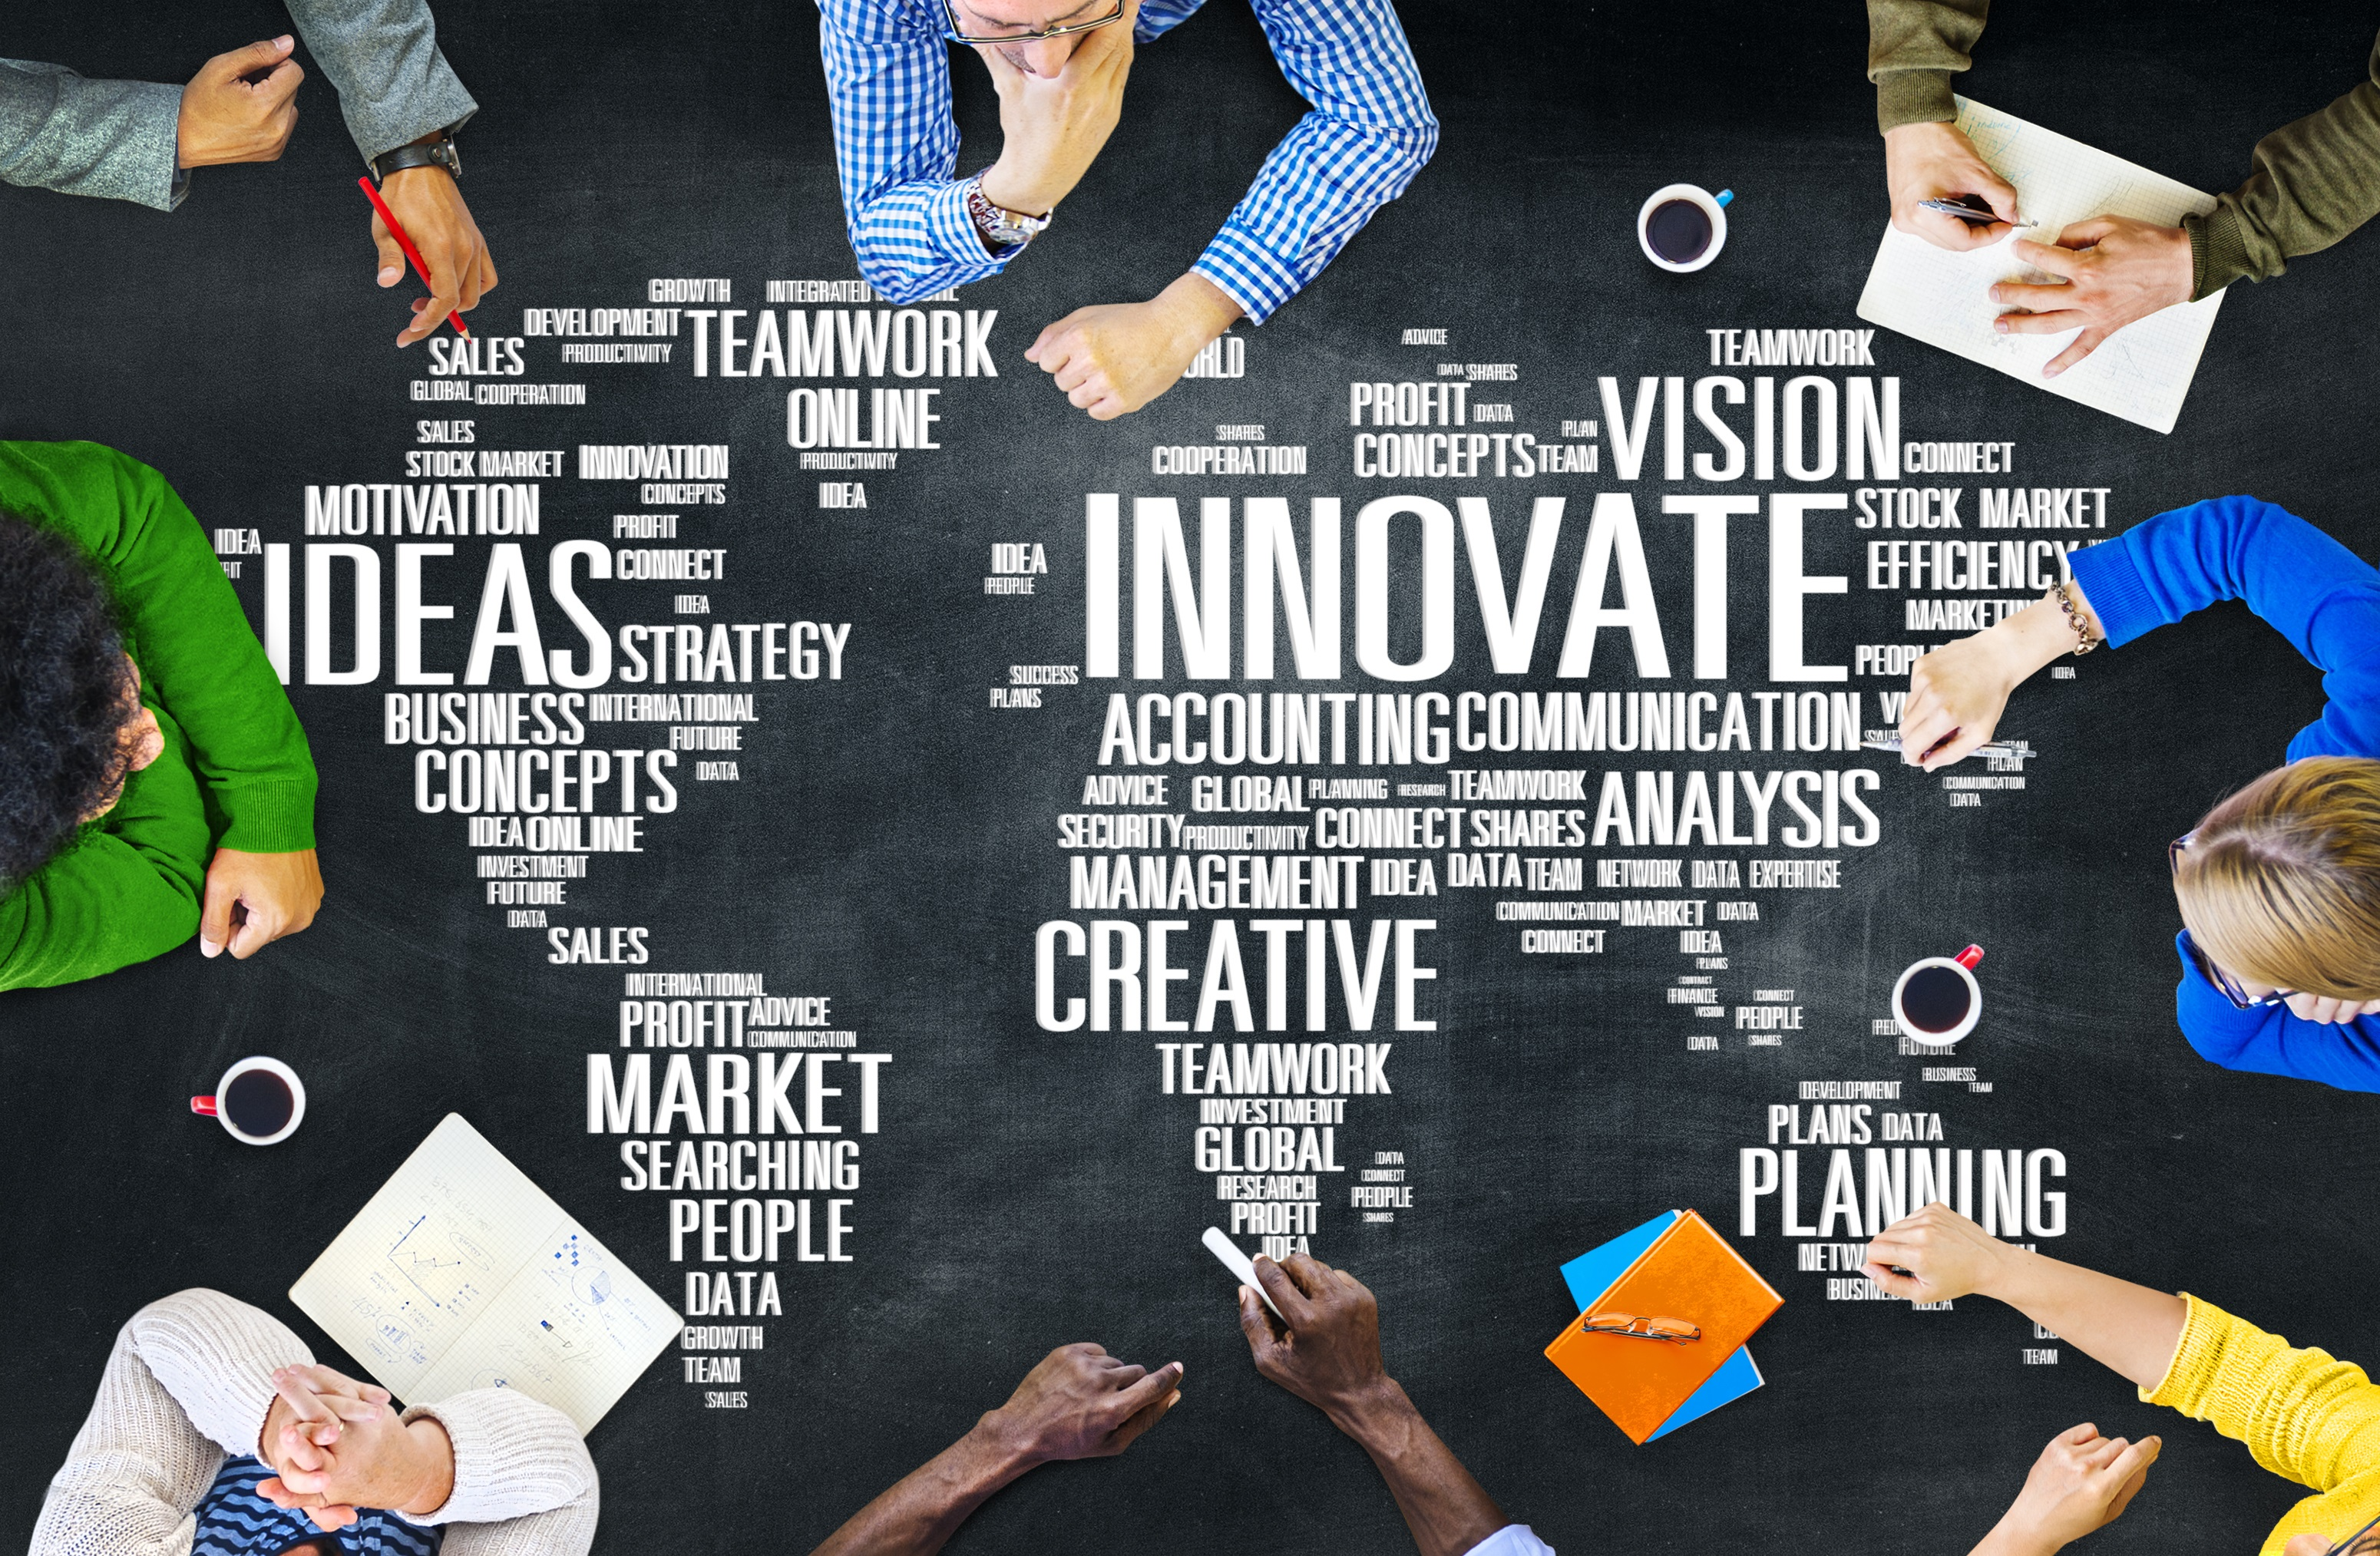 analyzing artistic innovation A refined and well-executed innovation process is key to long-term success click here and explore the vital steps to unlocking dynamic new ideas.